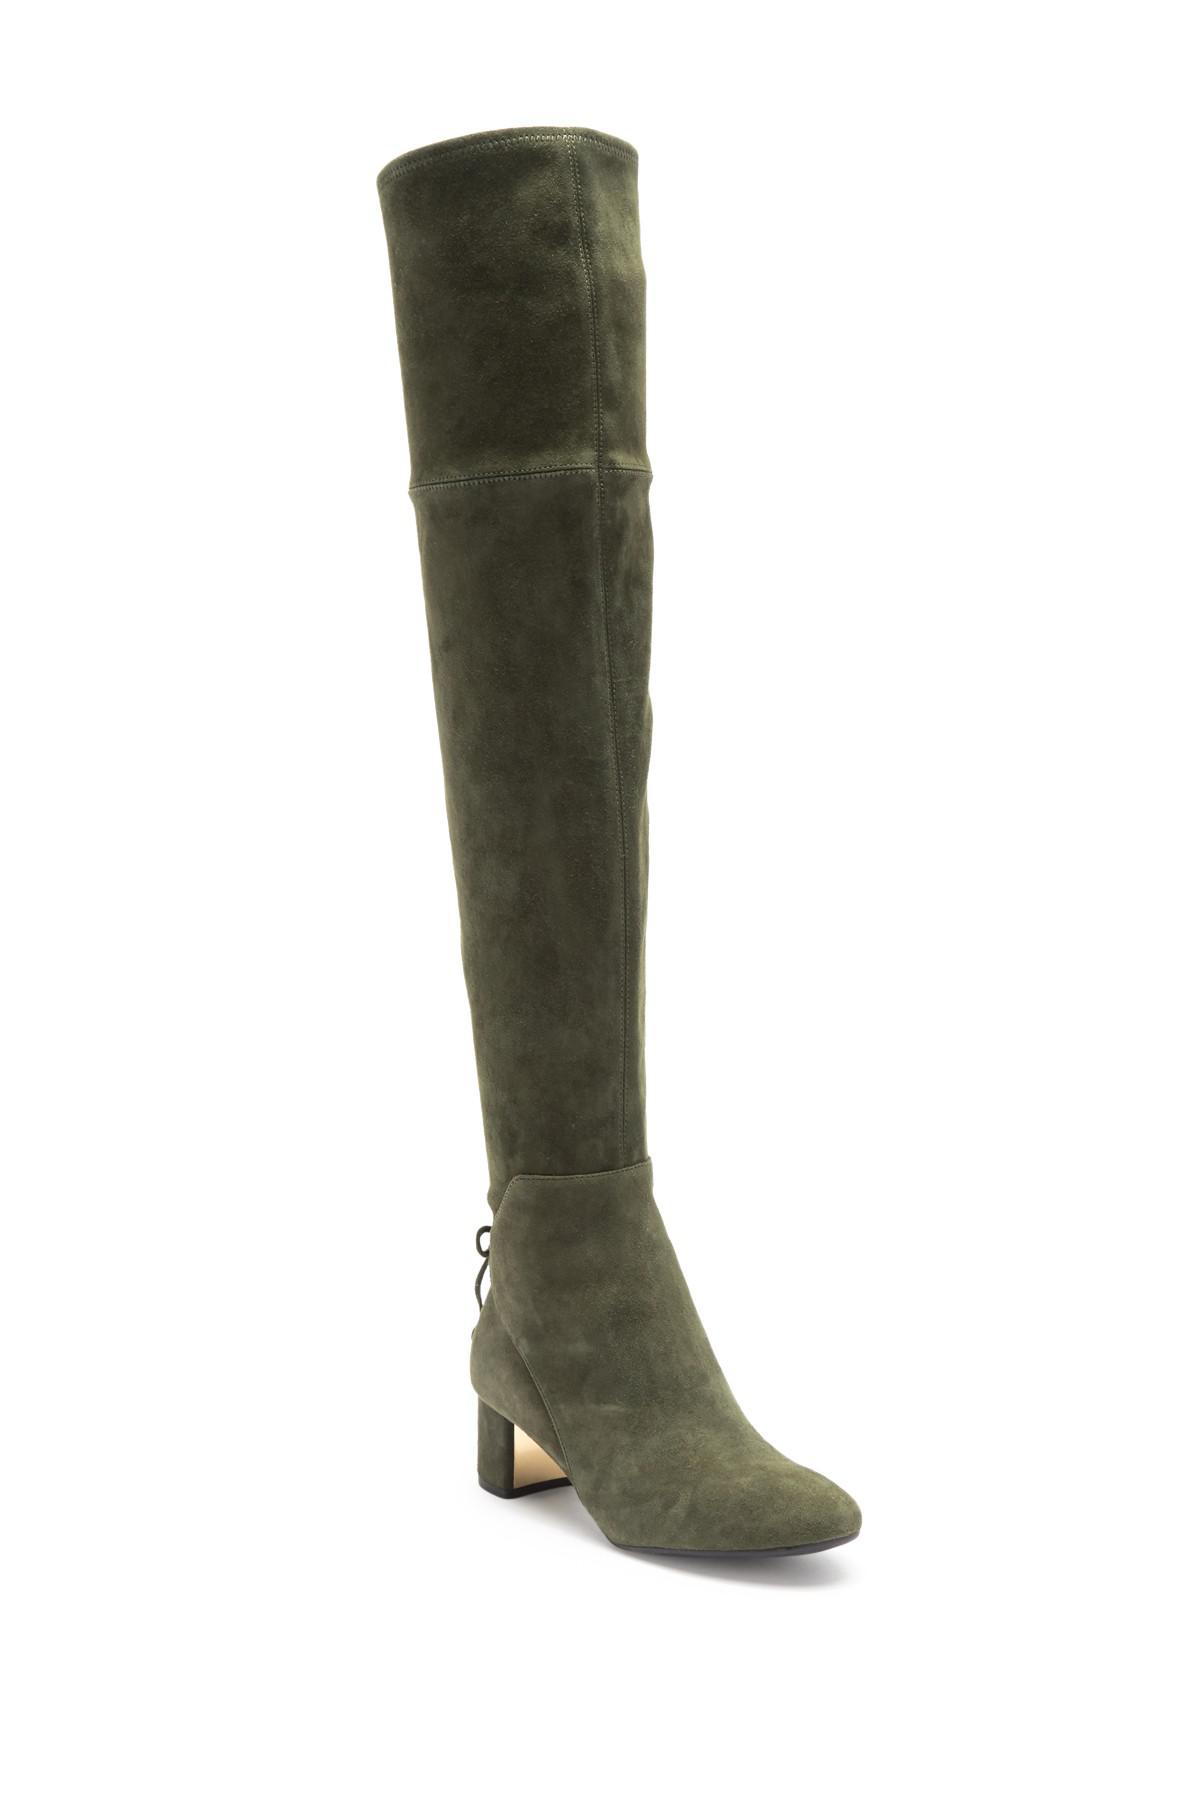 8a260eb16a7d60 Tory Burch. Women s Laila Over The Knee Boot